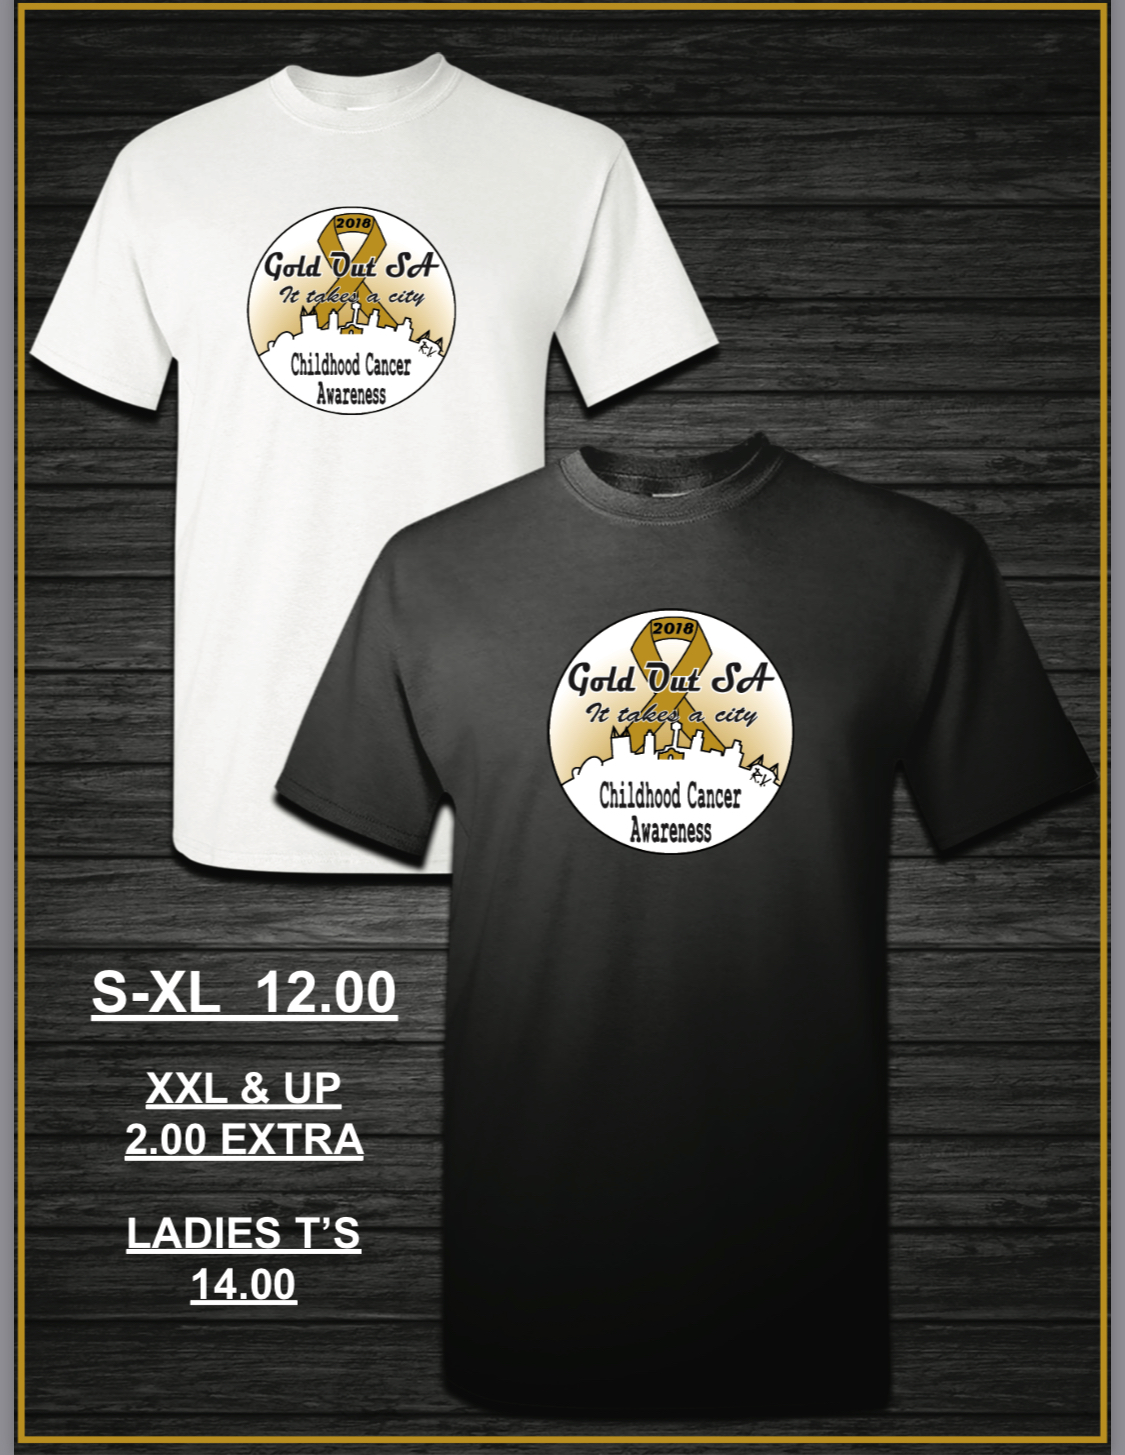 Gold Out T-Shirt LADIES V-NECK (White)